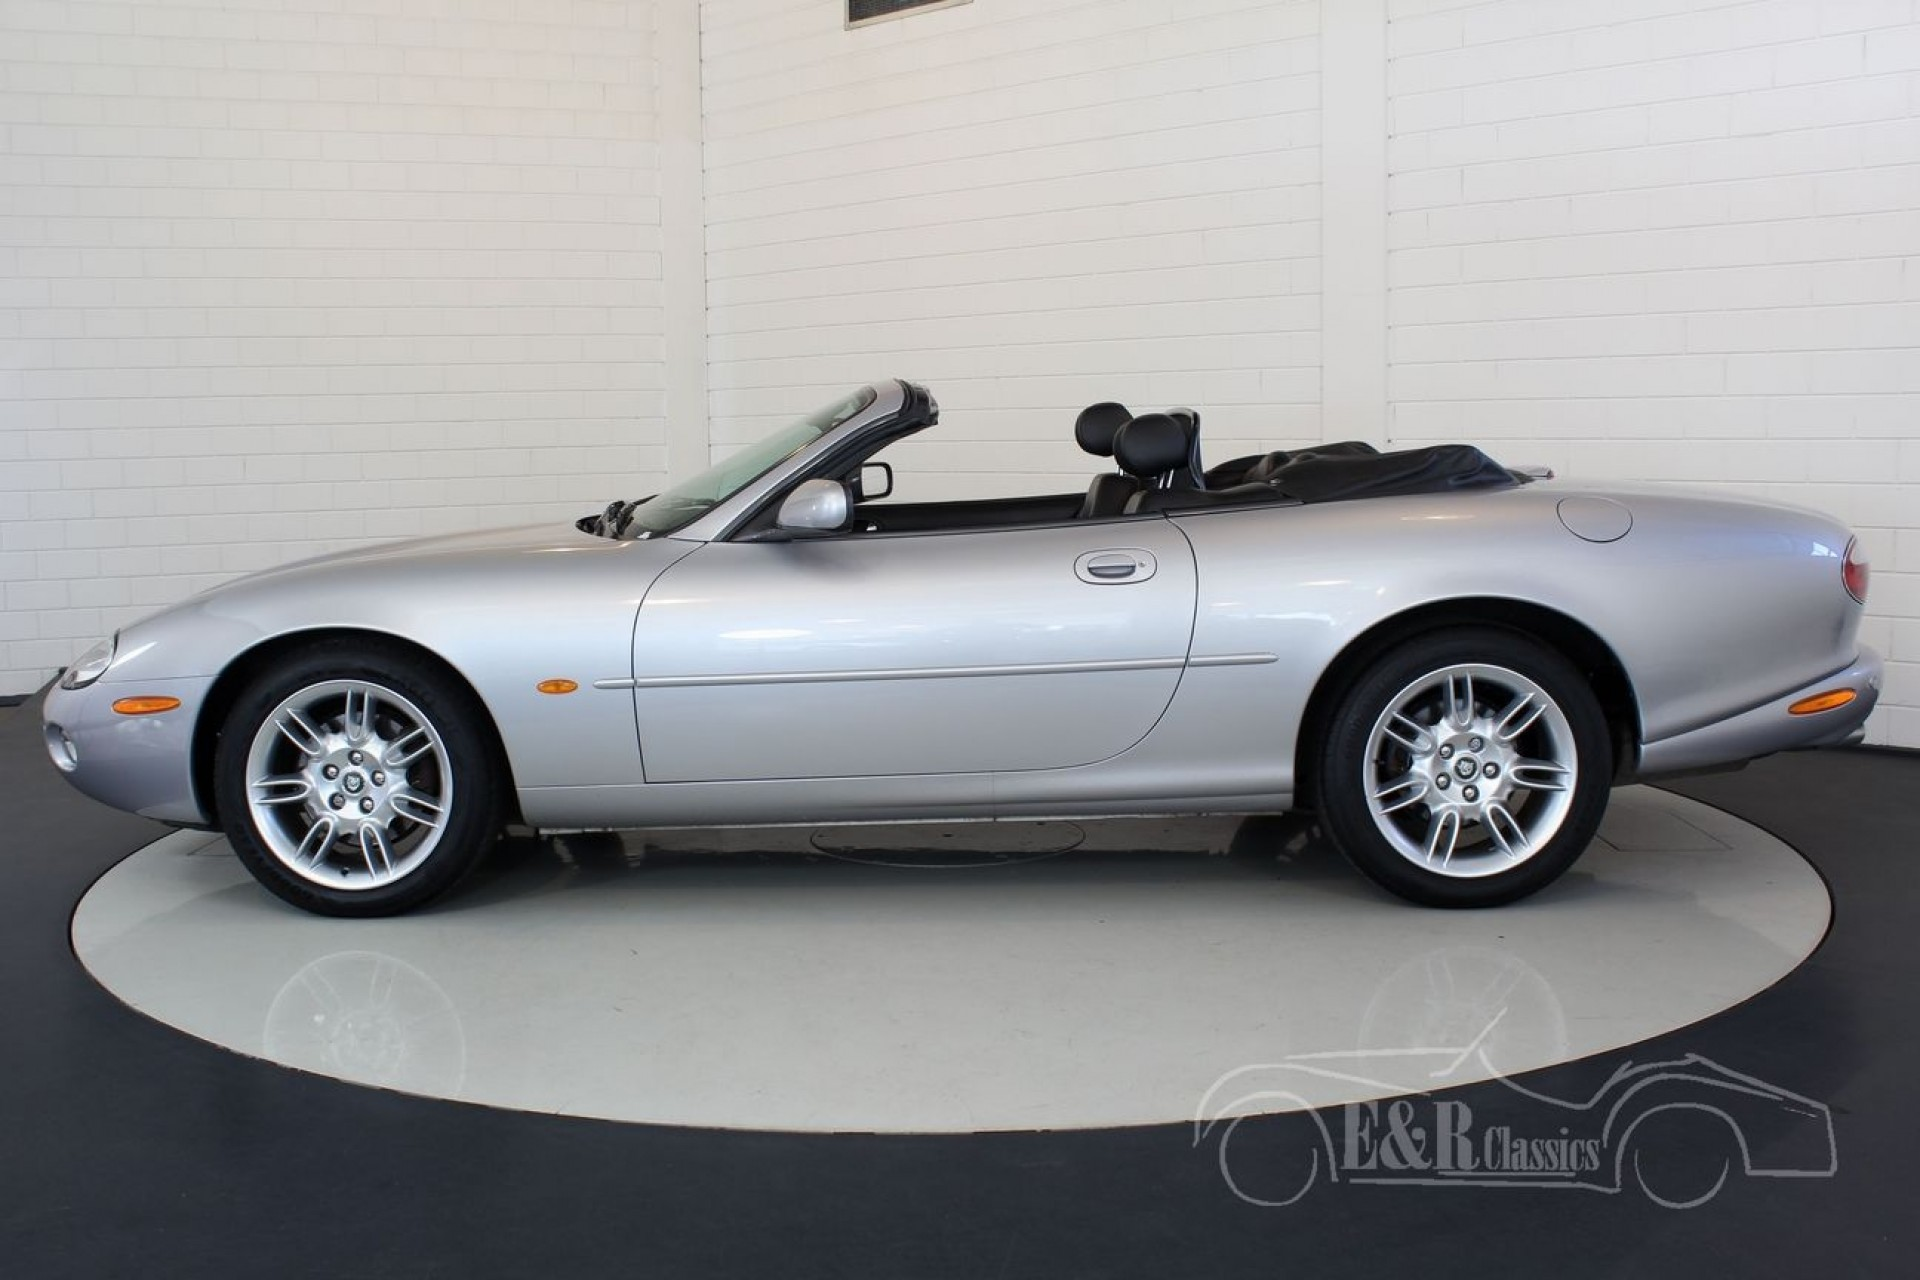 jaguar xk8 cabriolet 2003 for sale at erclassics. Black Bedroom Furniture Sets. Home Design Ideas